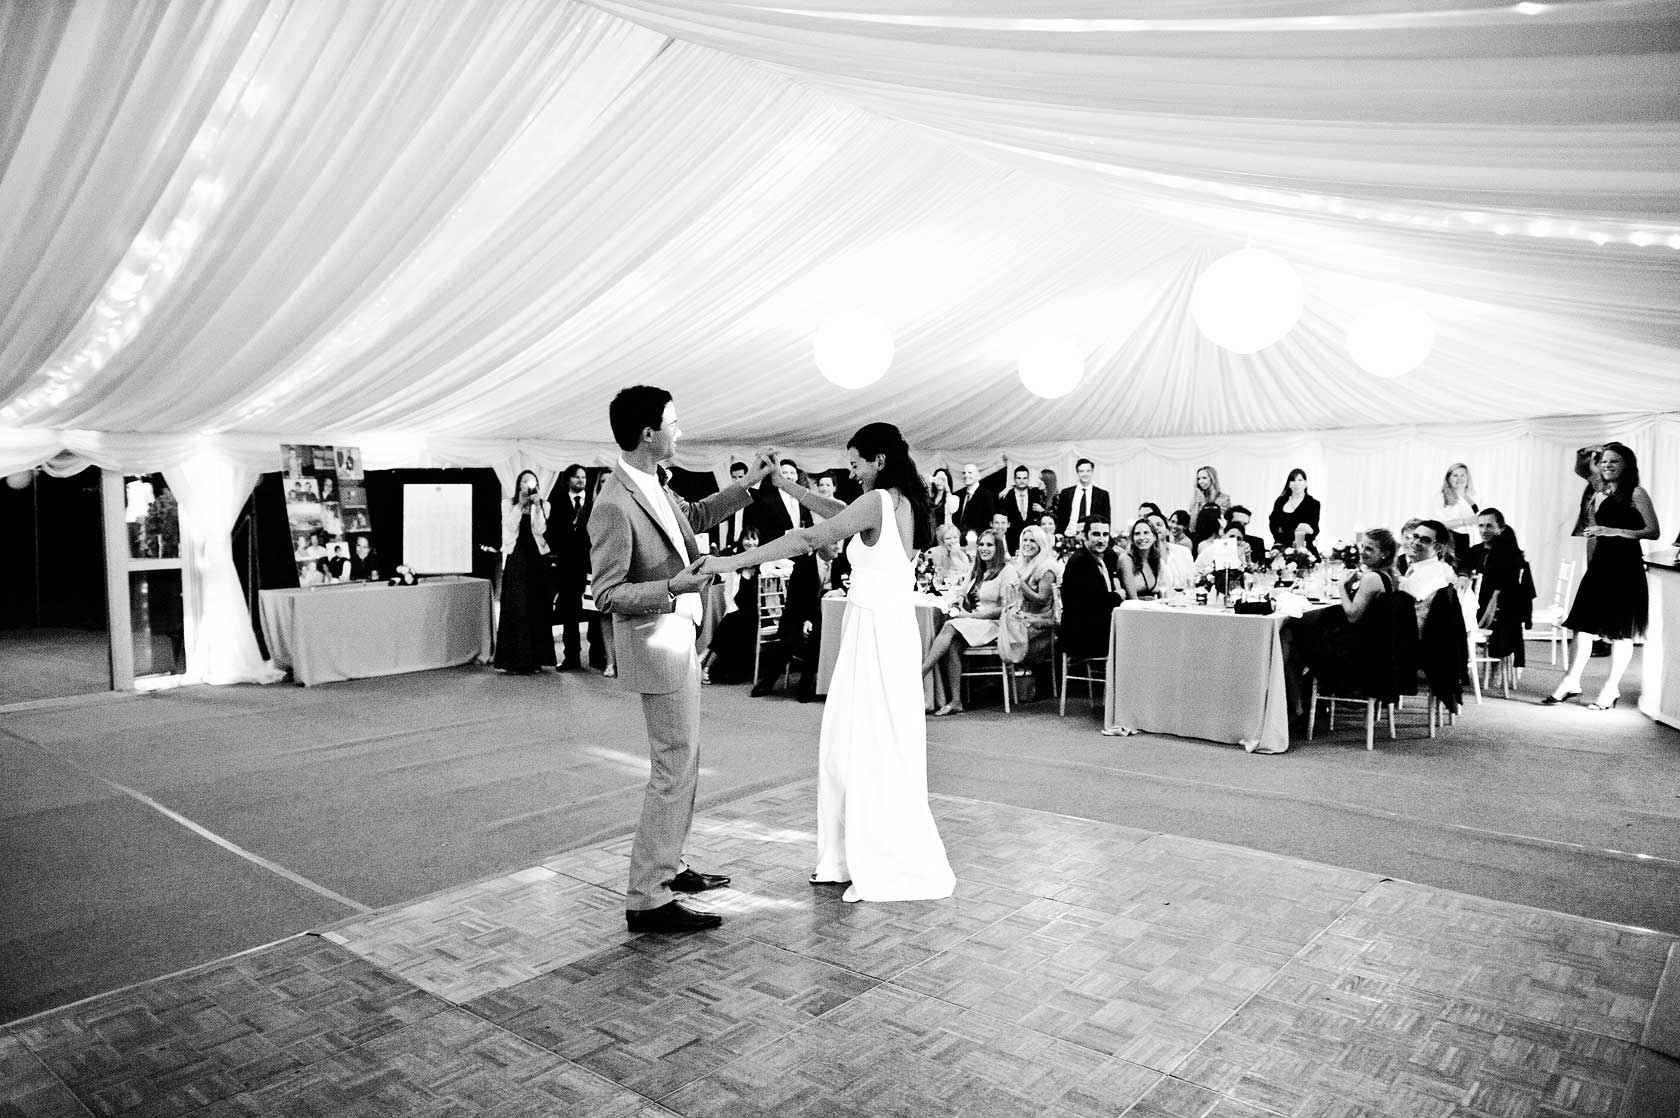 Reportage Wedding Photography in a field